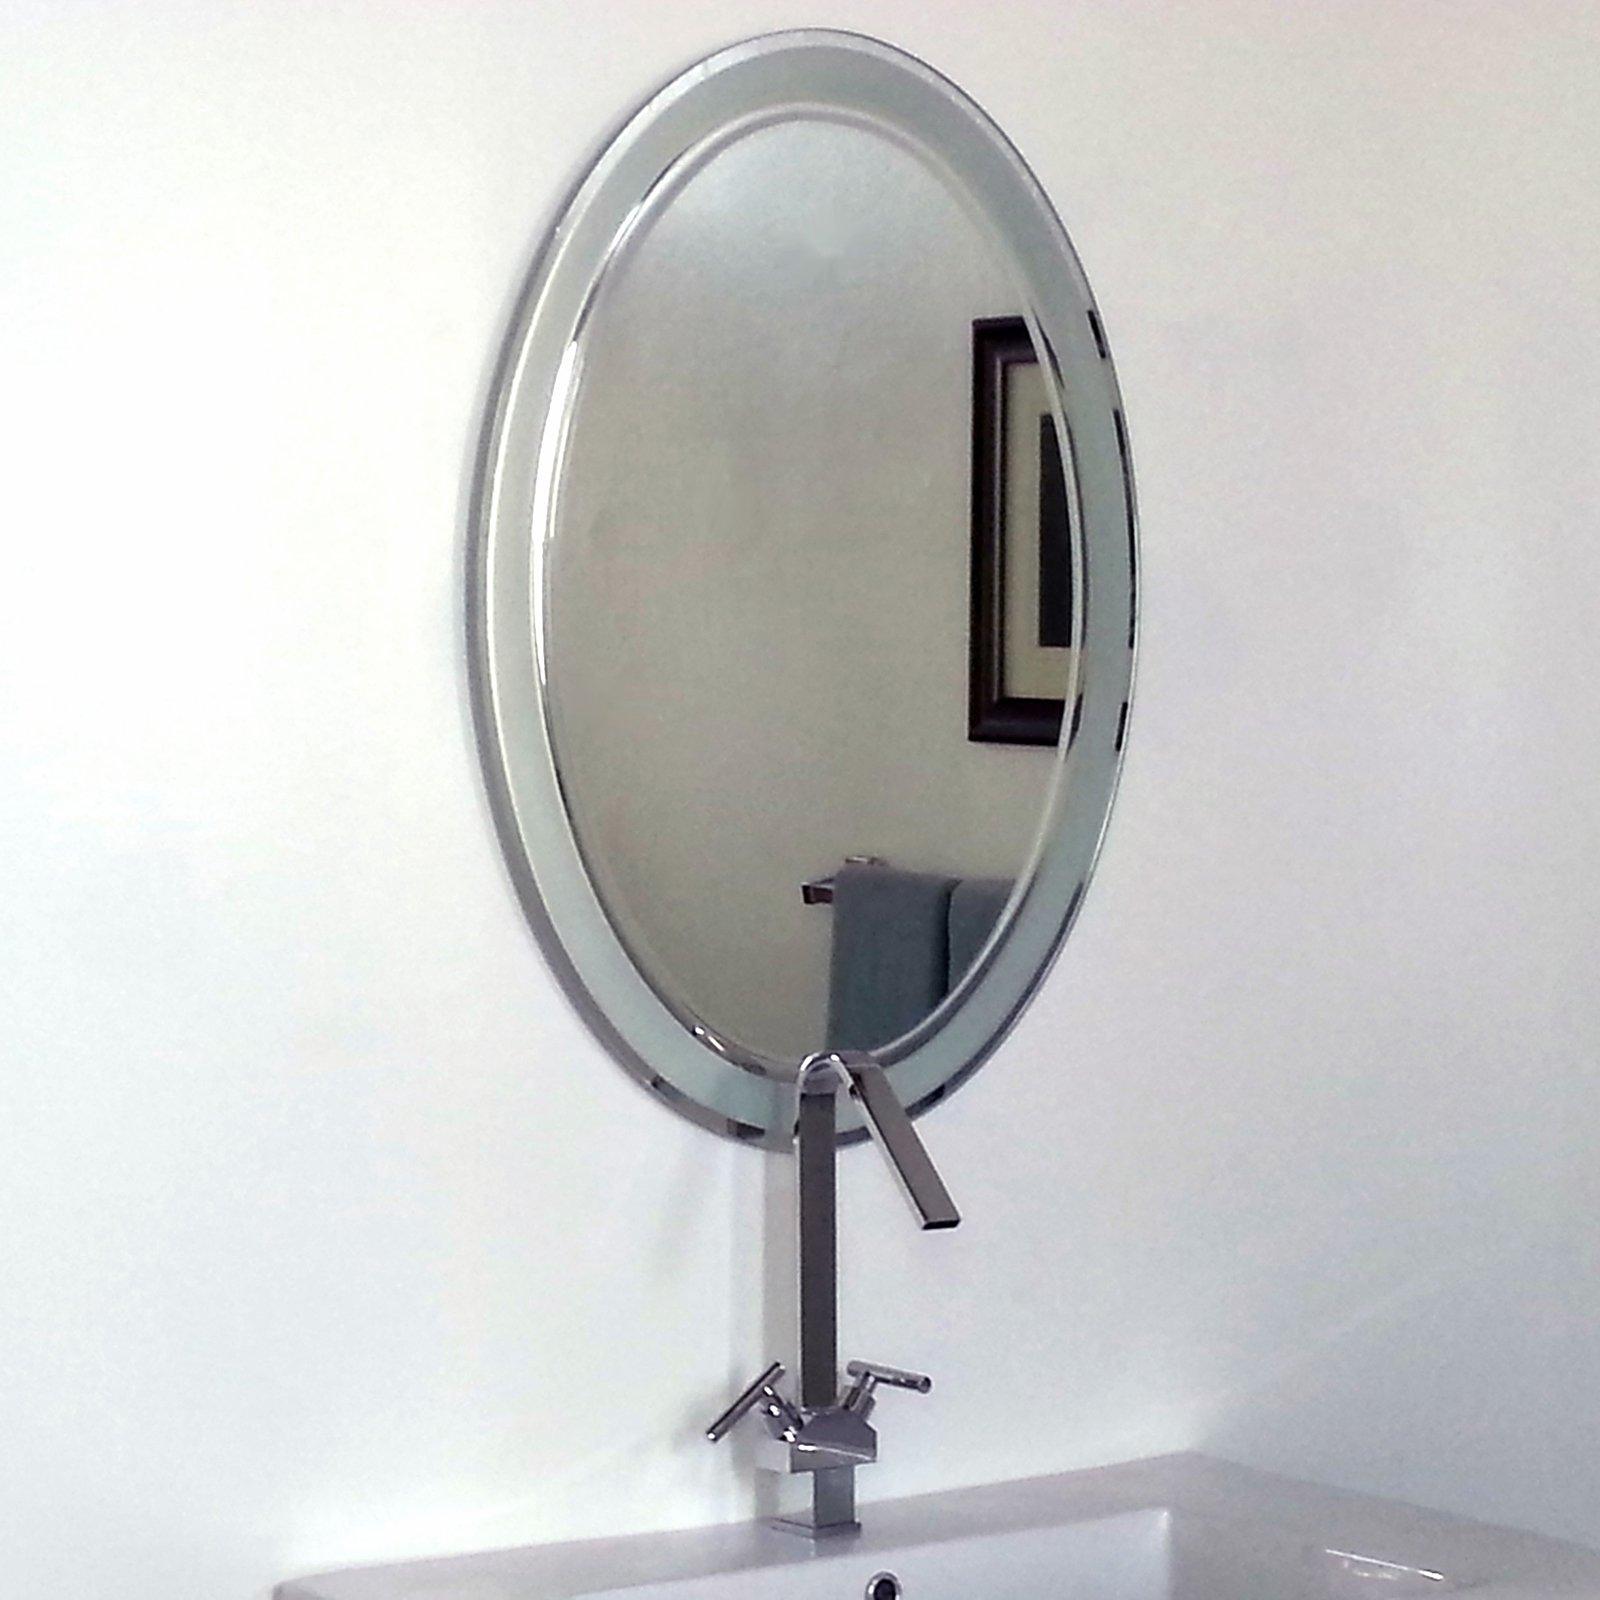 Décor Wonderland Alden Modern Bathroom Mirror by Decor Wonderland of US